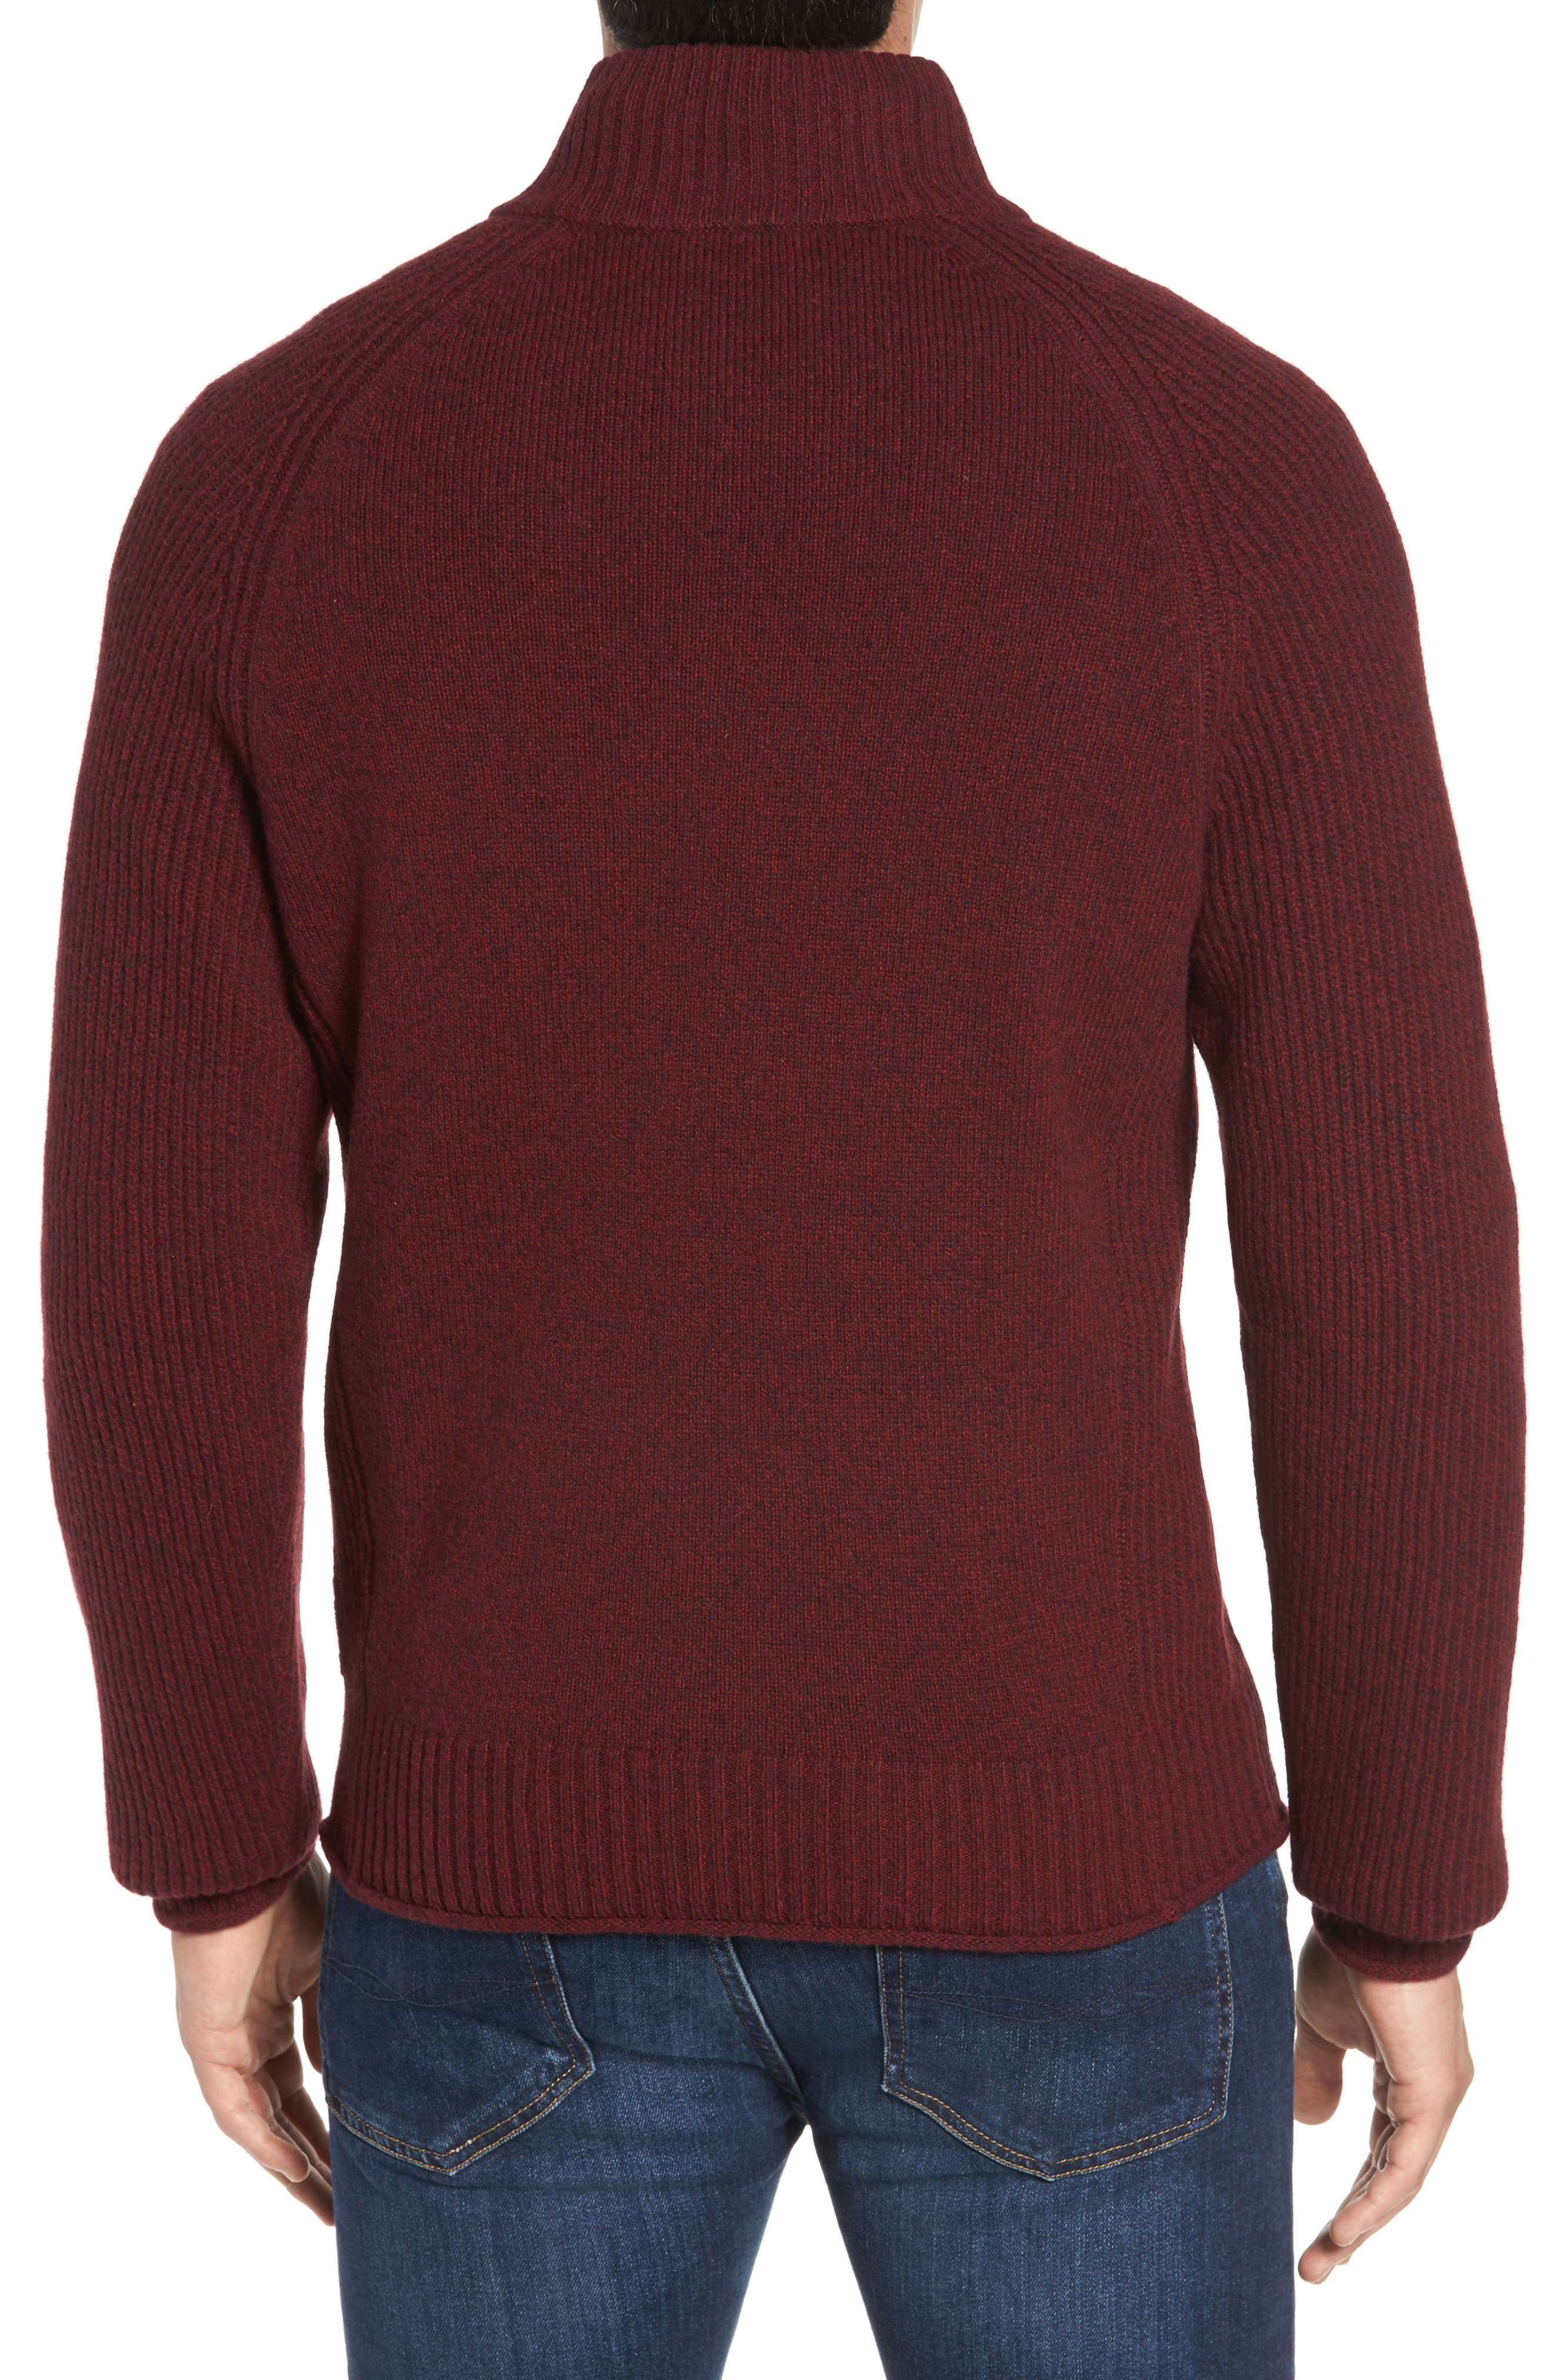 Stredwick Lambswool Sweater,                             Alternate thumbnail 8, color,